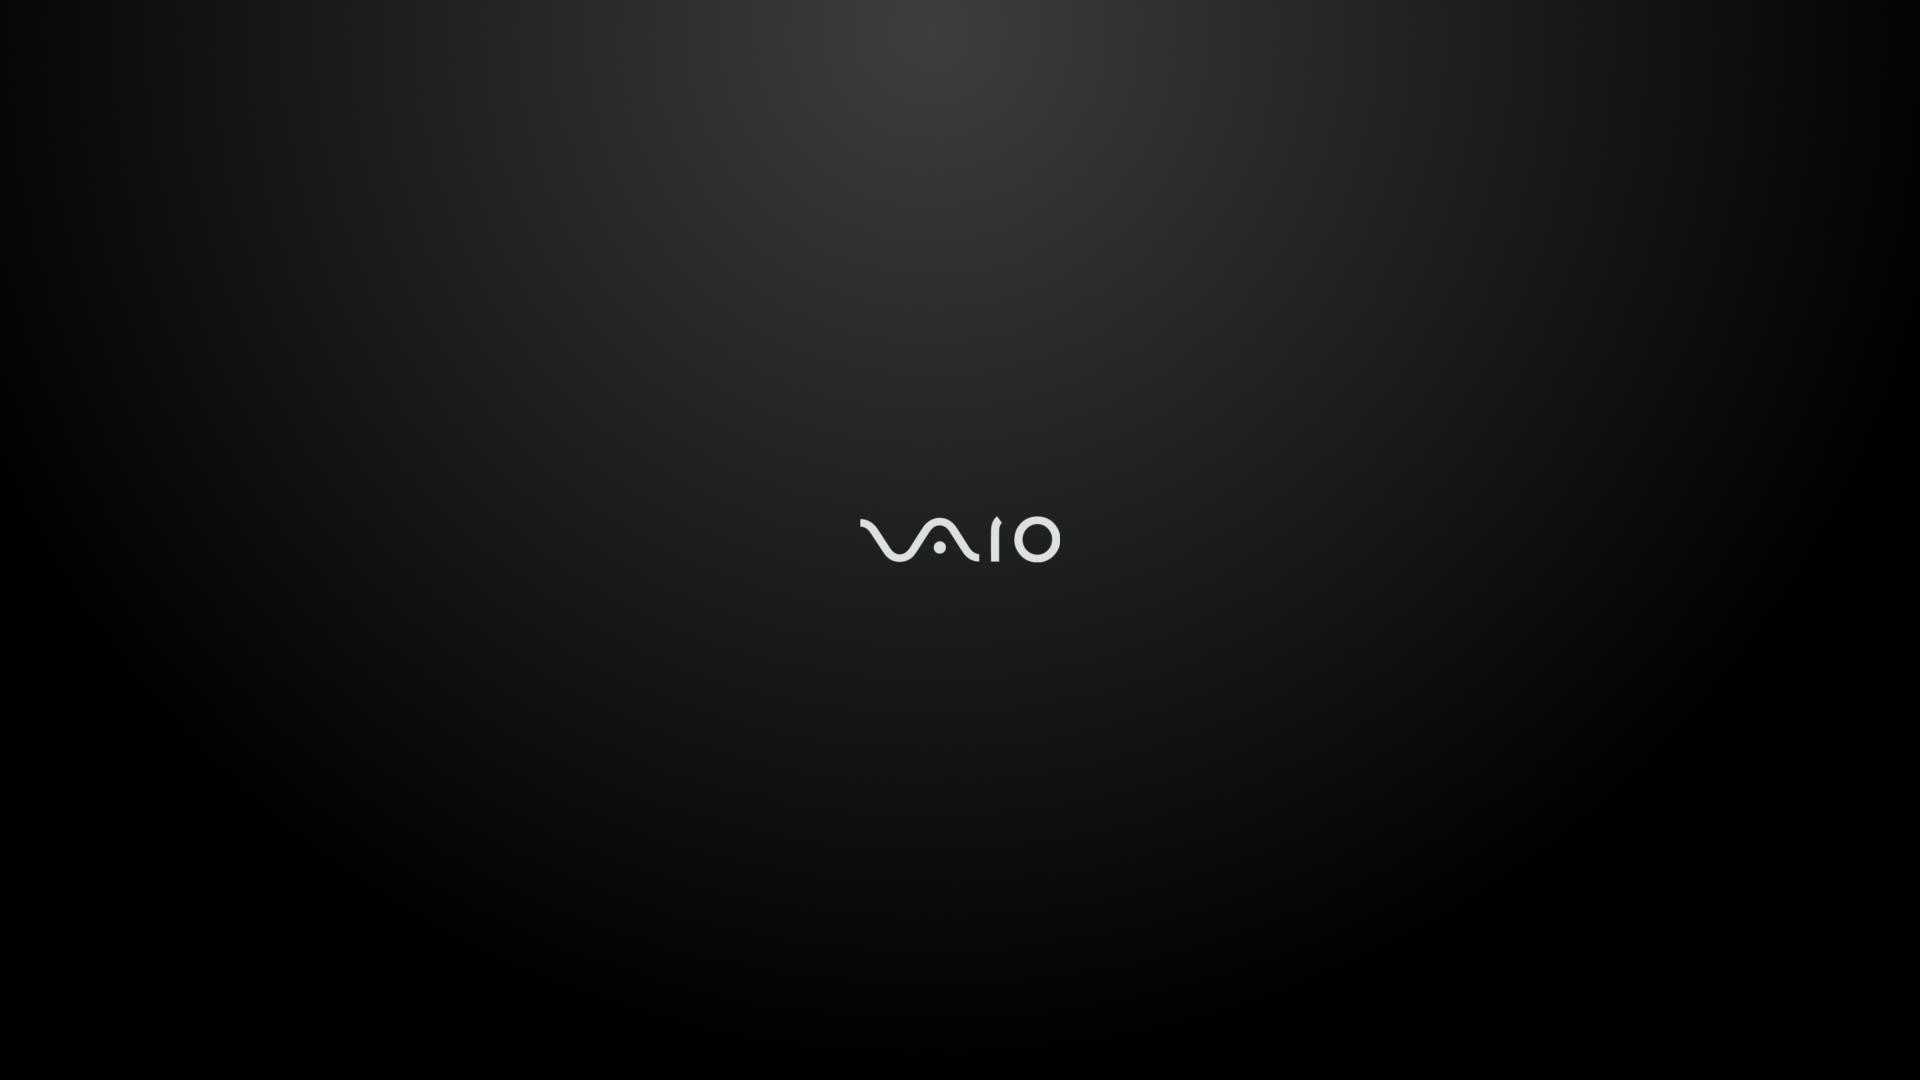 Sony Vaio Wallpapers (53+ Images